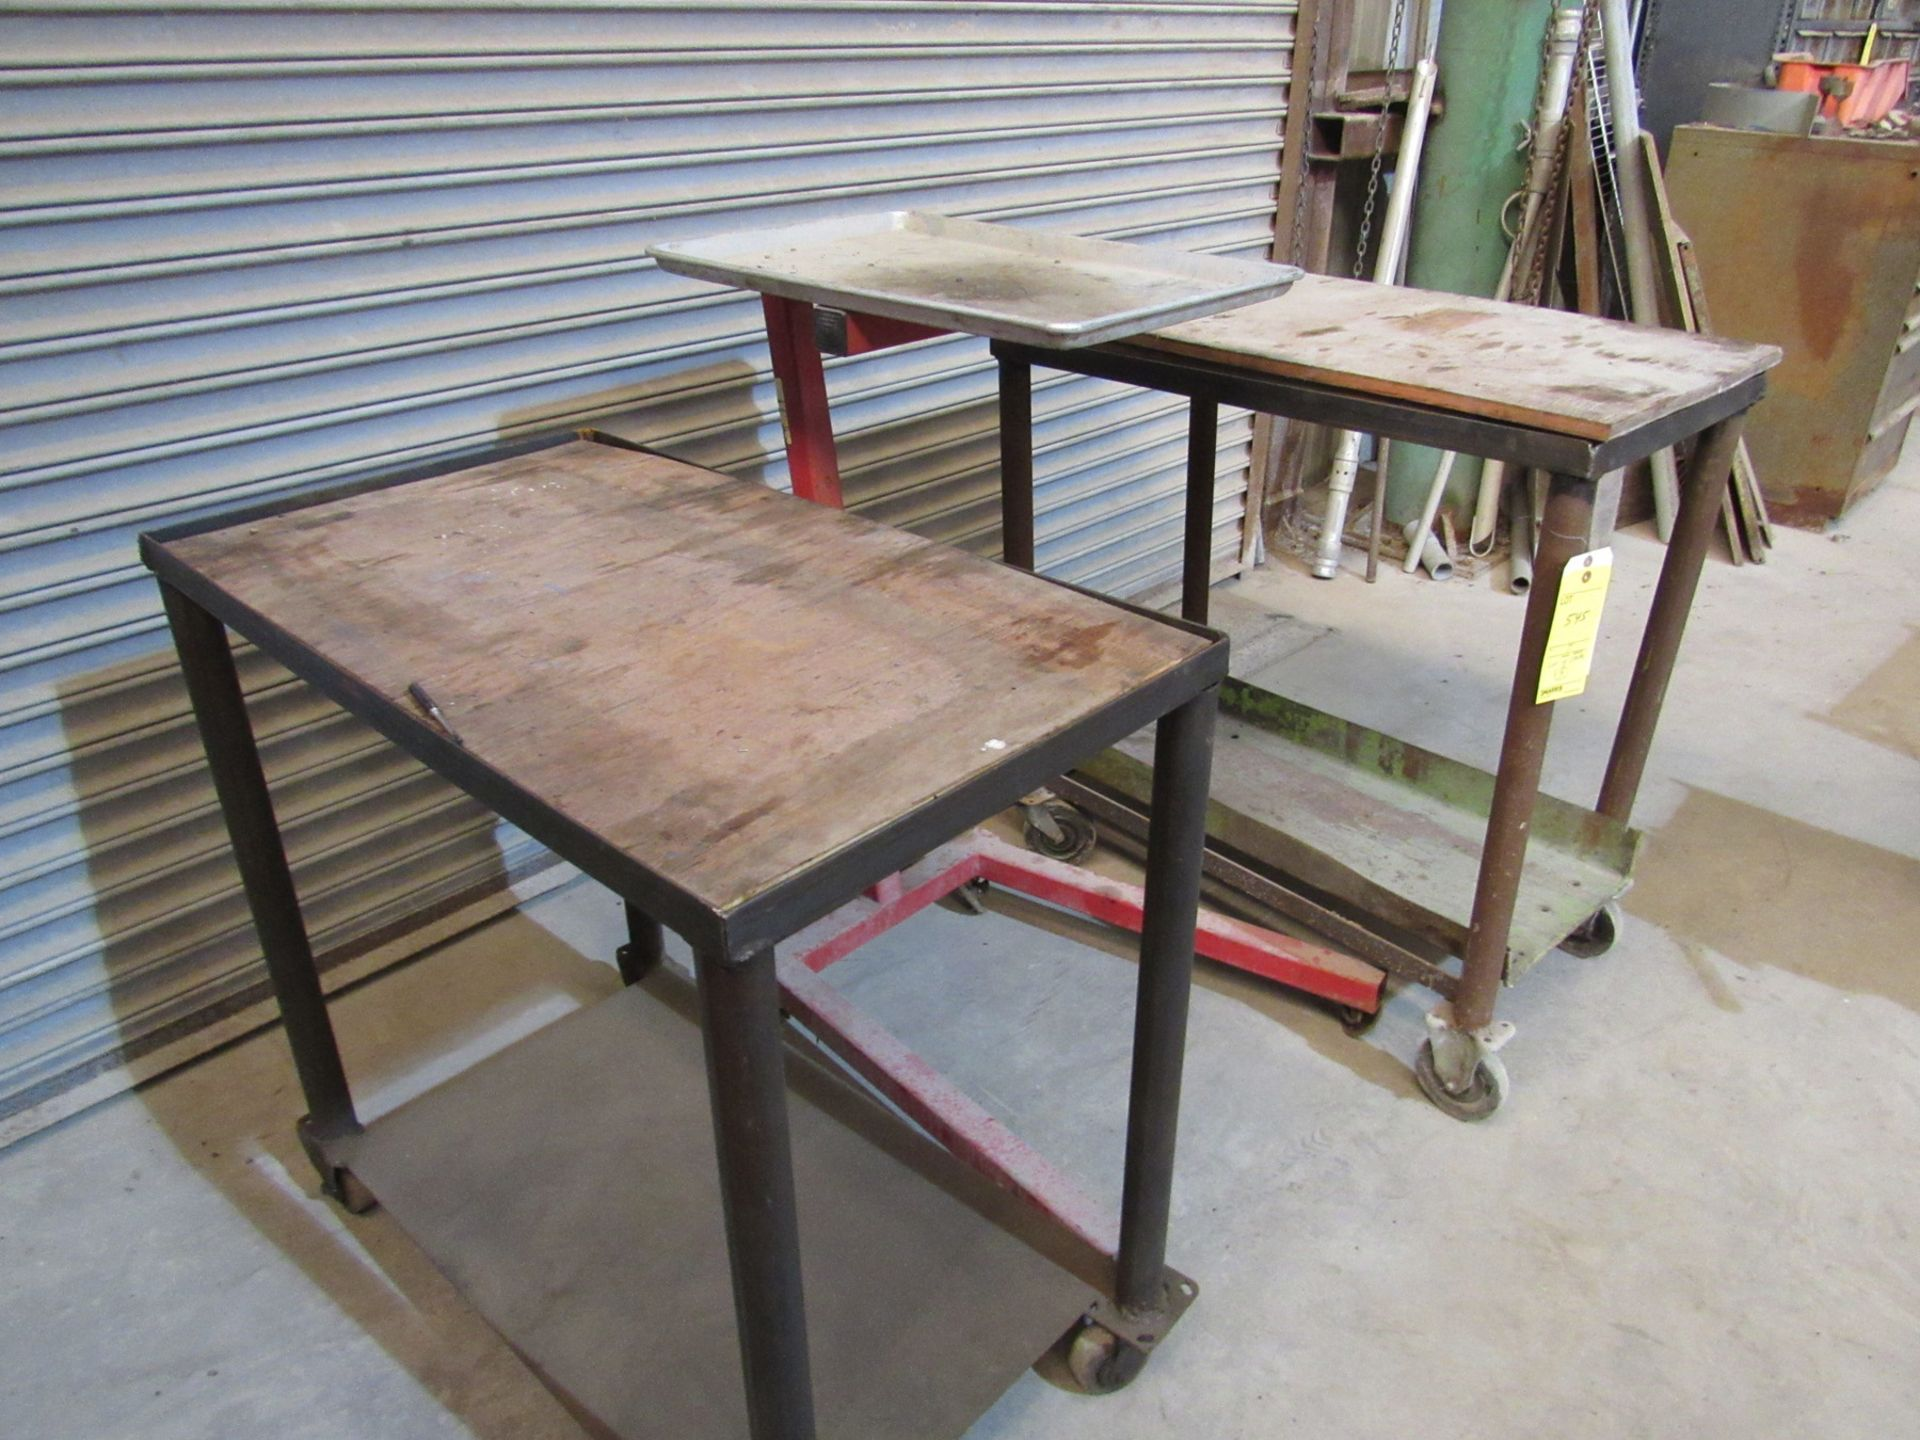 Lot of 3: Shop Carts - Image 2 of 2